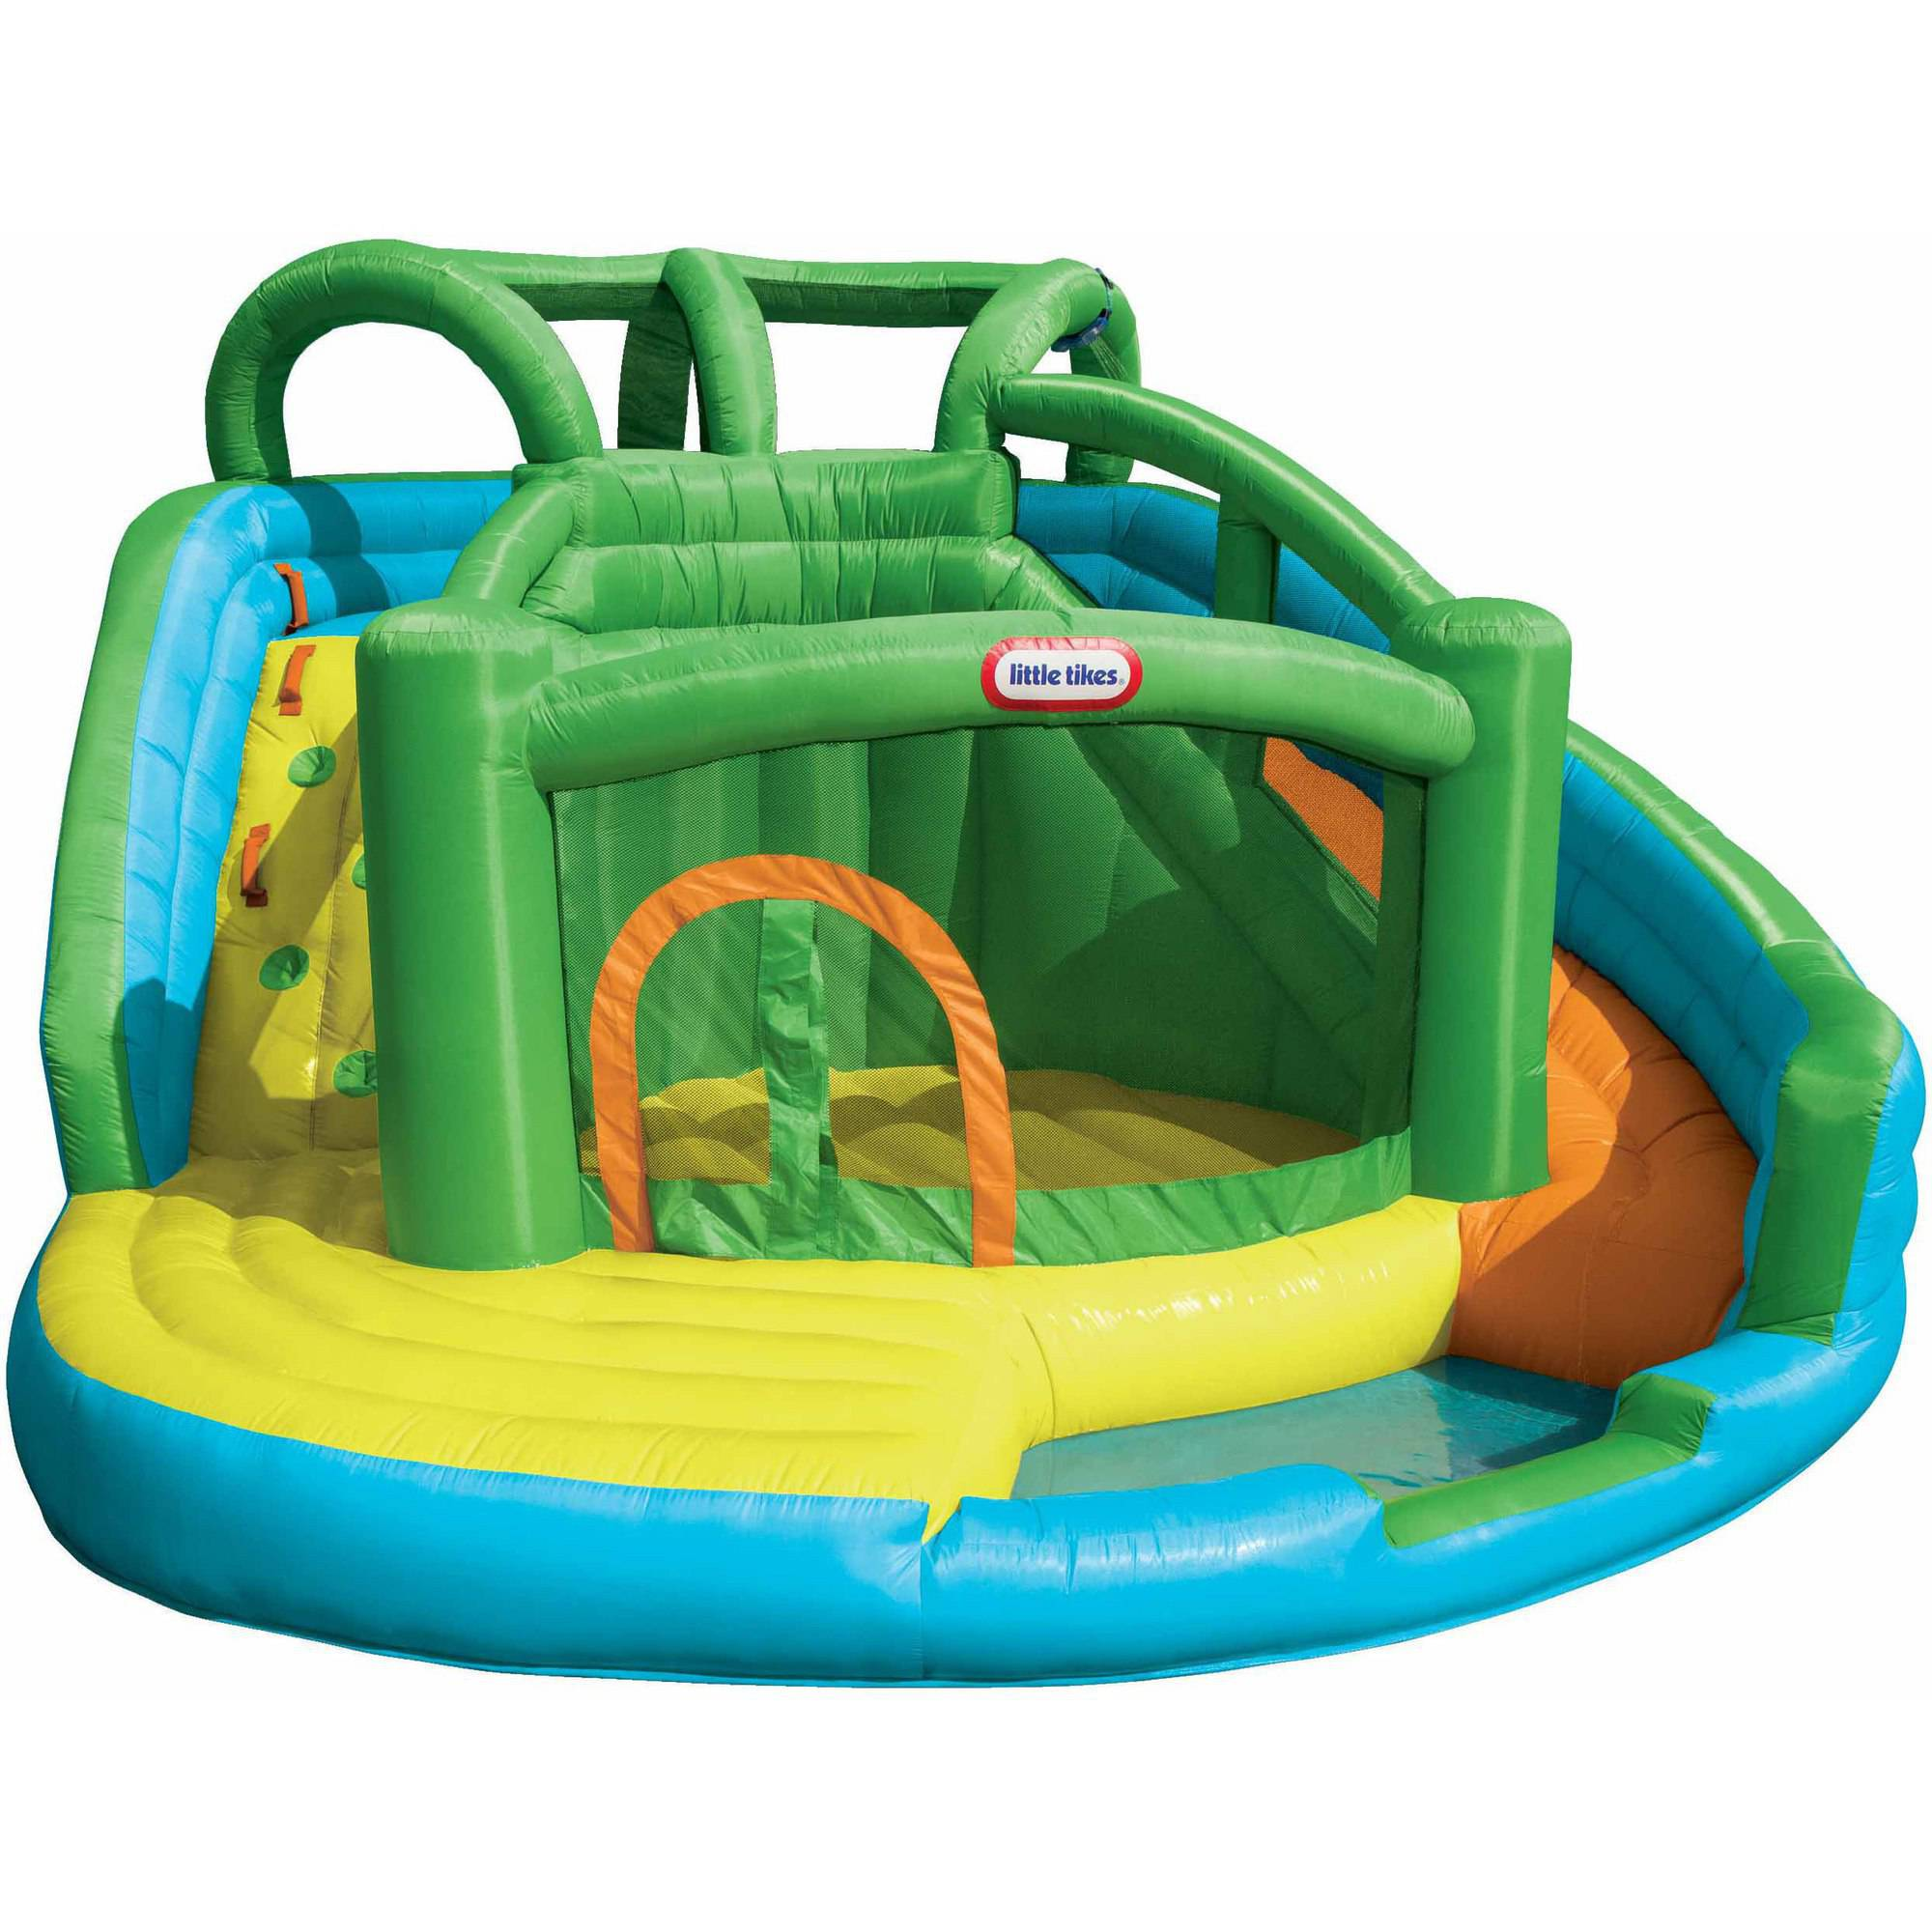 Little Tikes 2-in-1 Wet 'n Dry Waterslide and Bouncer by MGA Entertainment